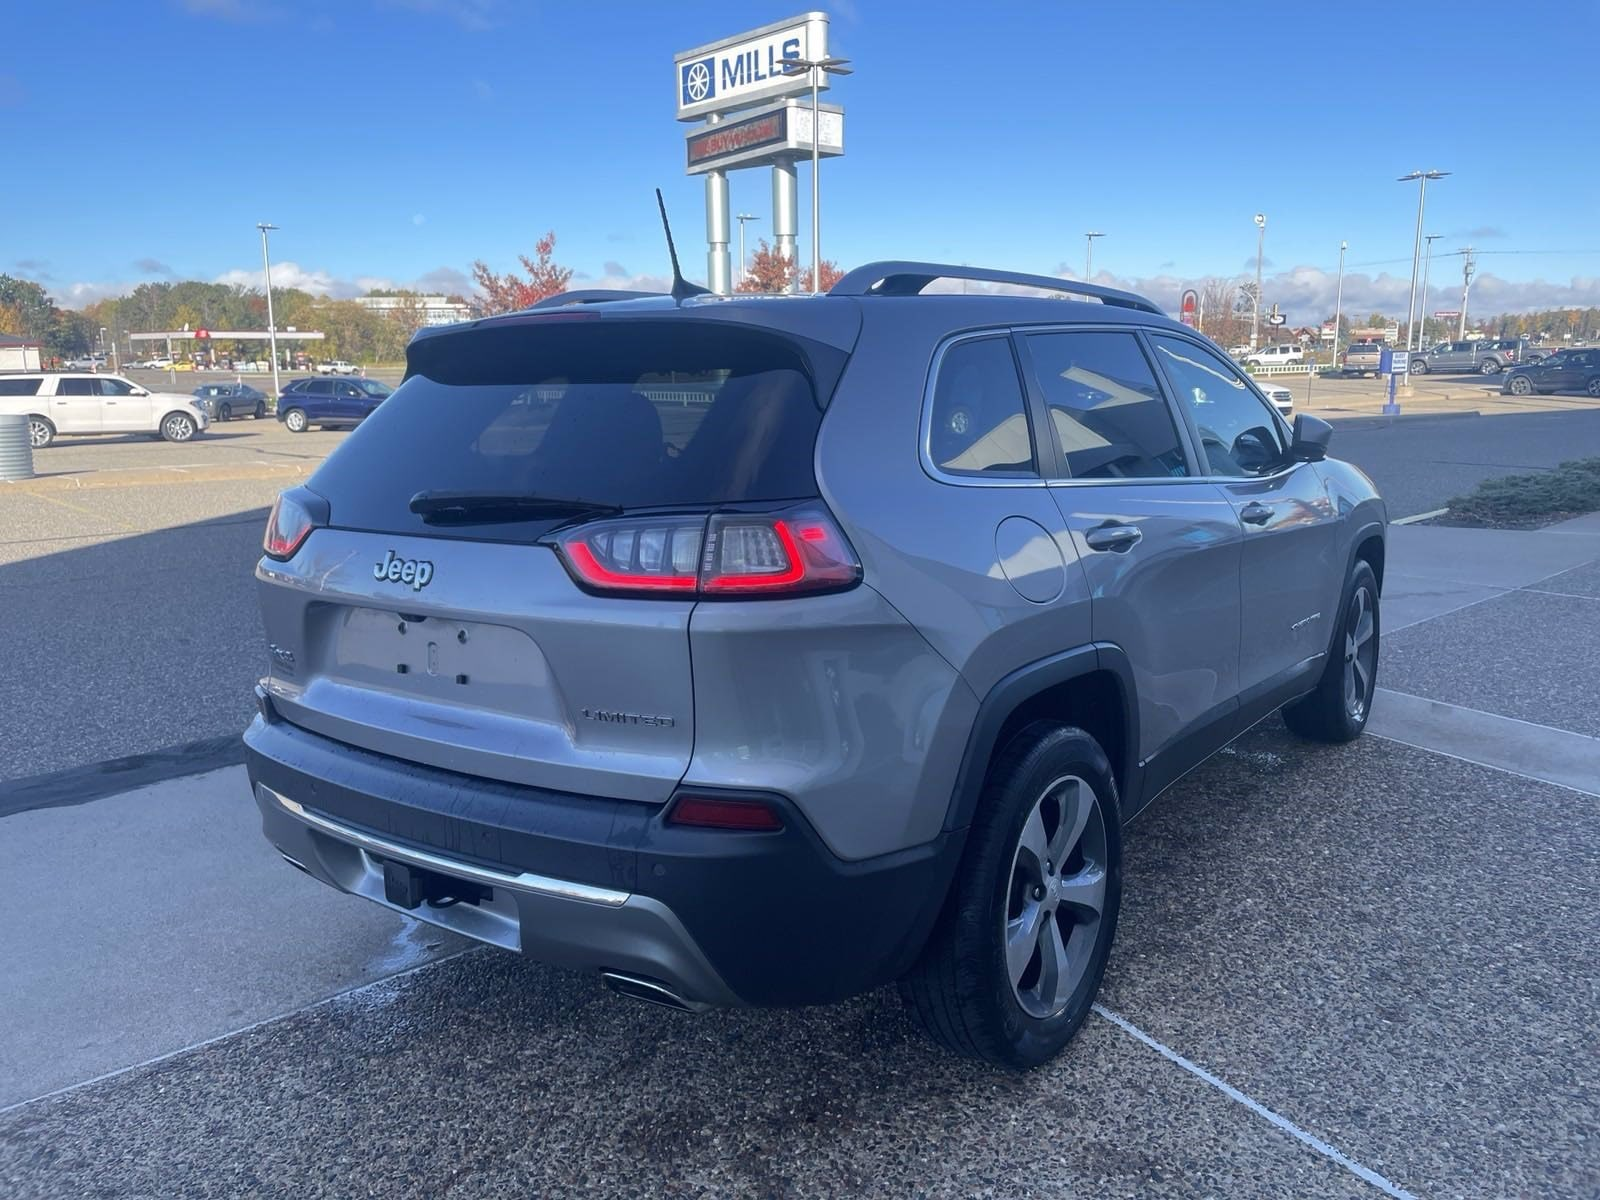 Used 2019 Jeep Cherokee Limited with VIN 1C4PJMDX8KD218337 for sale in Baxter, Minnesota